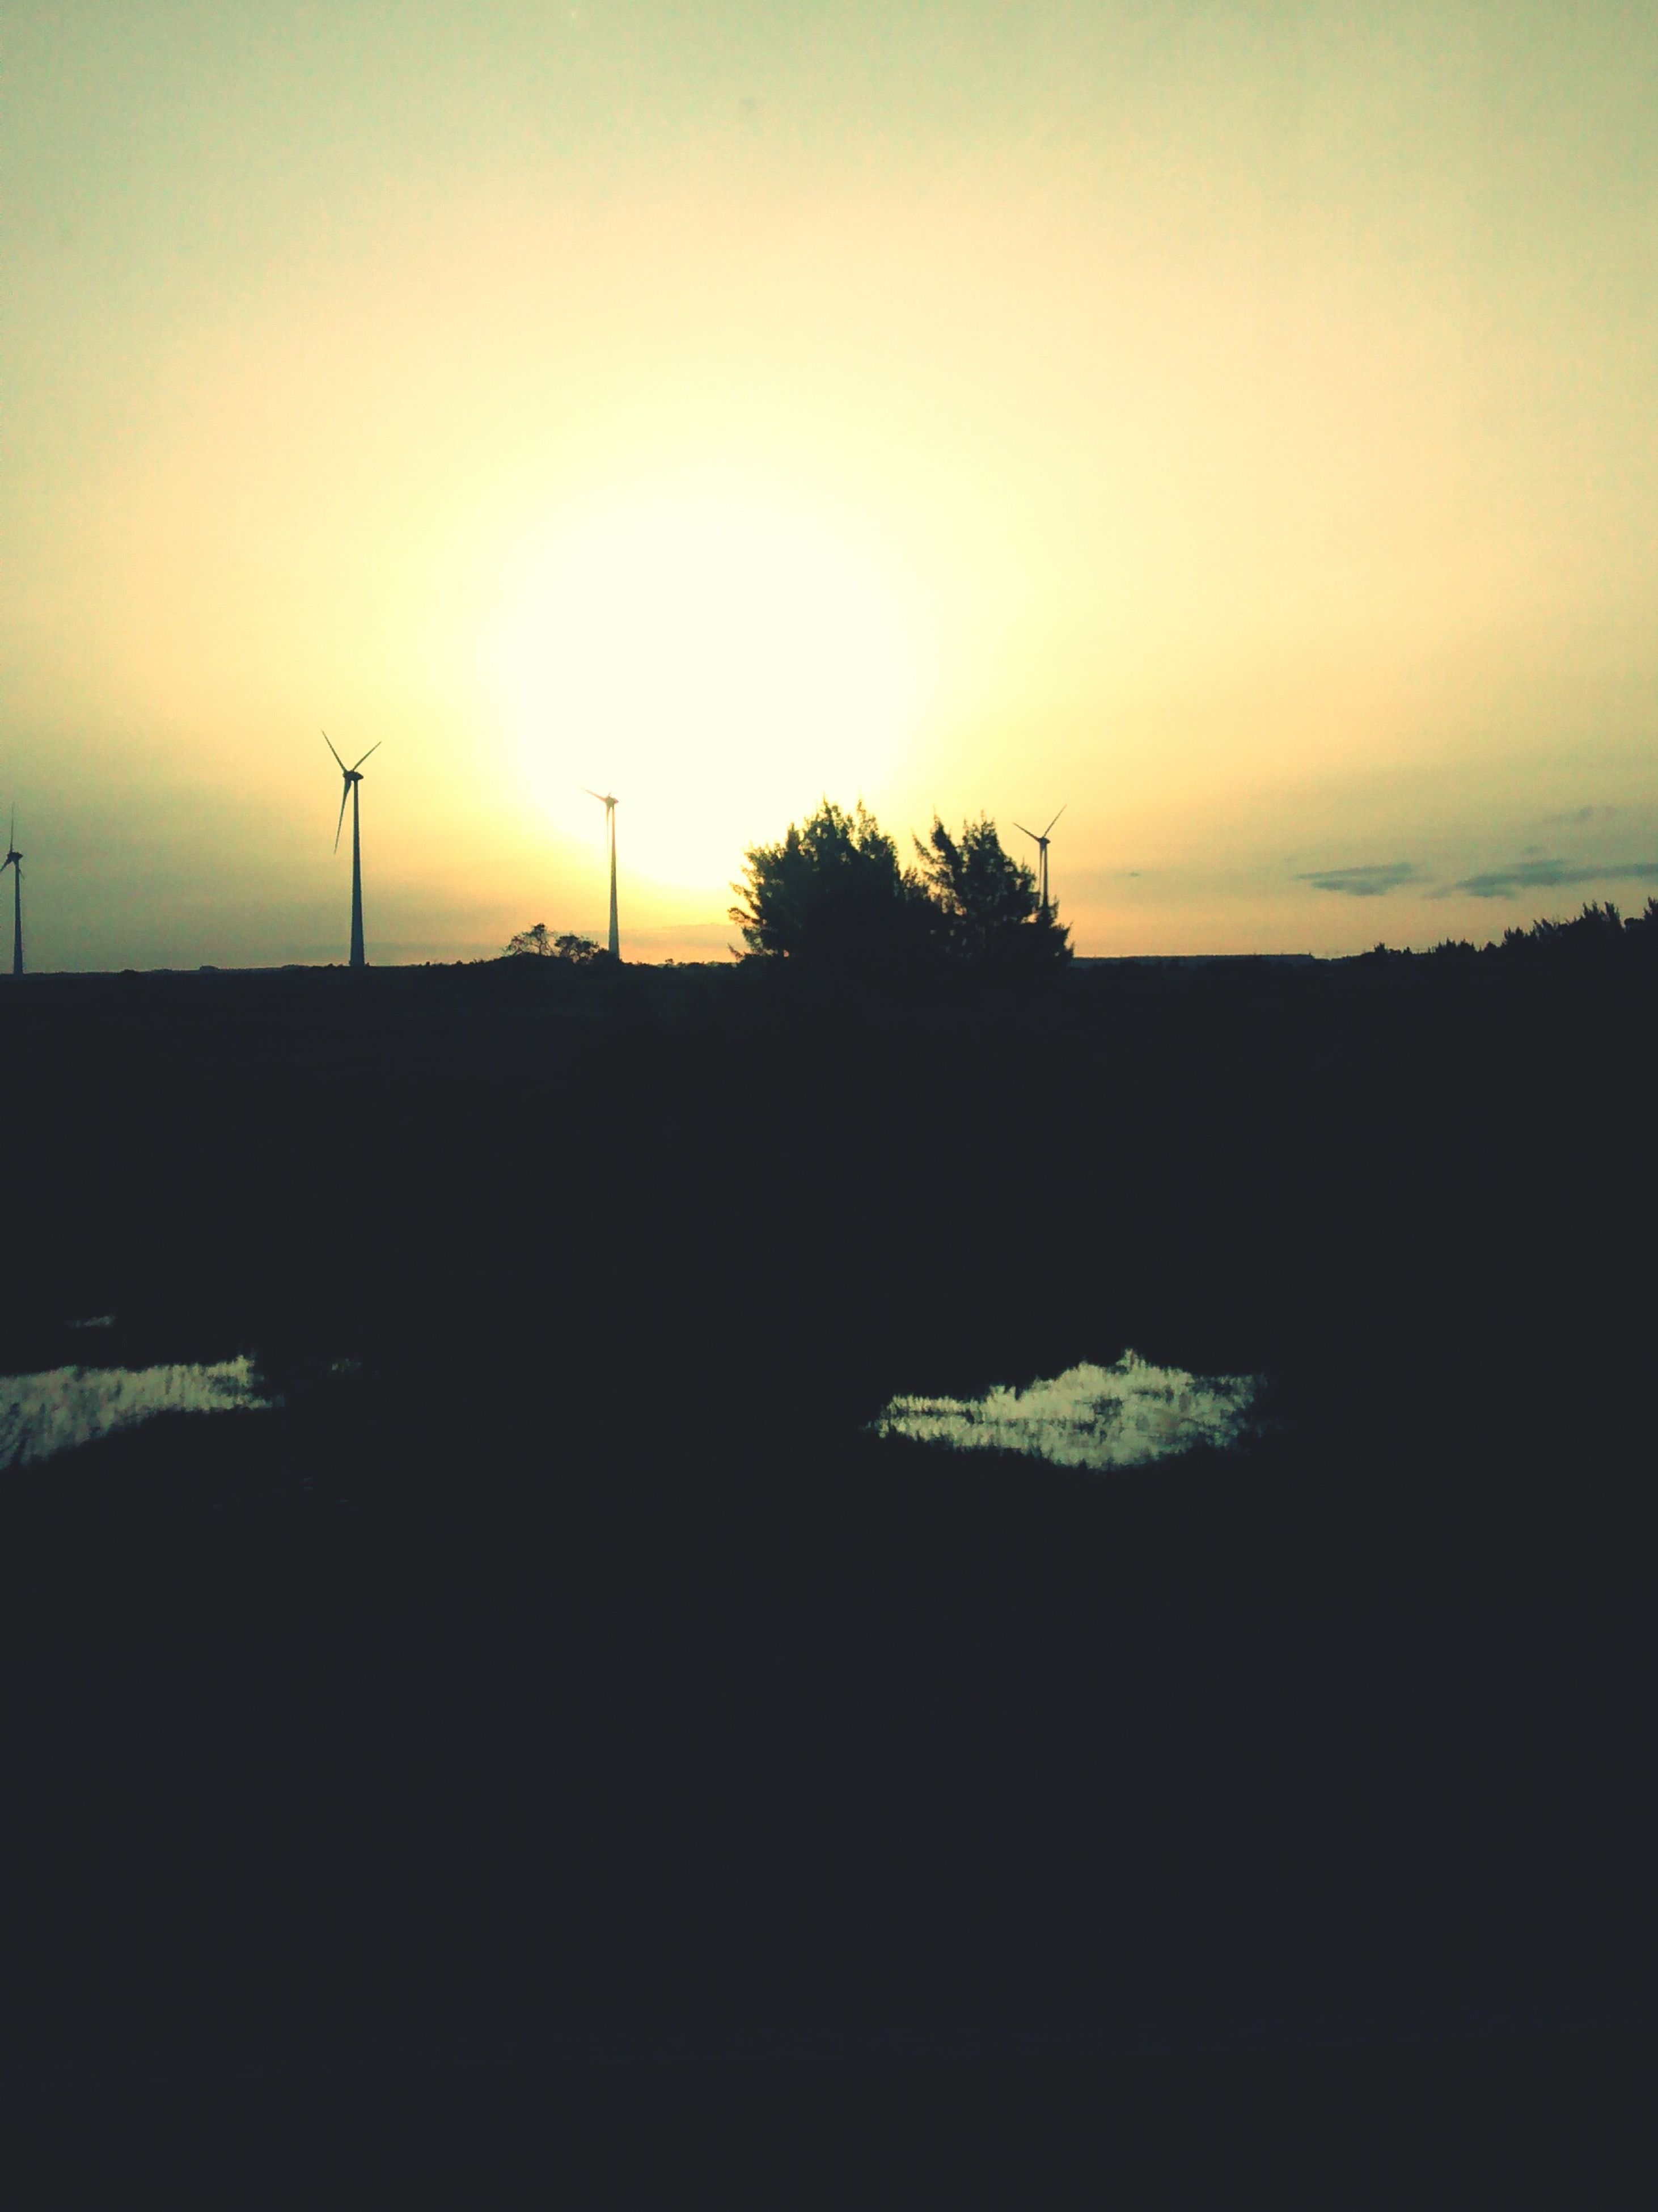 sunset, landscape, silhouette, tranquil scene, sky, tranquility, scenics, field, beauty in nature, nature, orange color, rural scene, idyllic, tree, copy space, dusk, sun, horizon over land, outdoors, no people